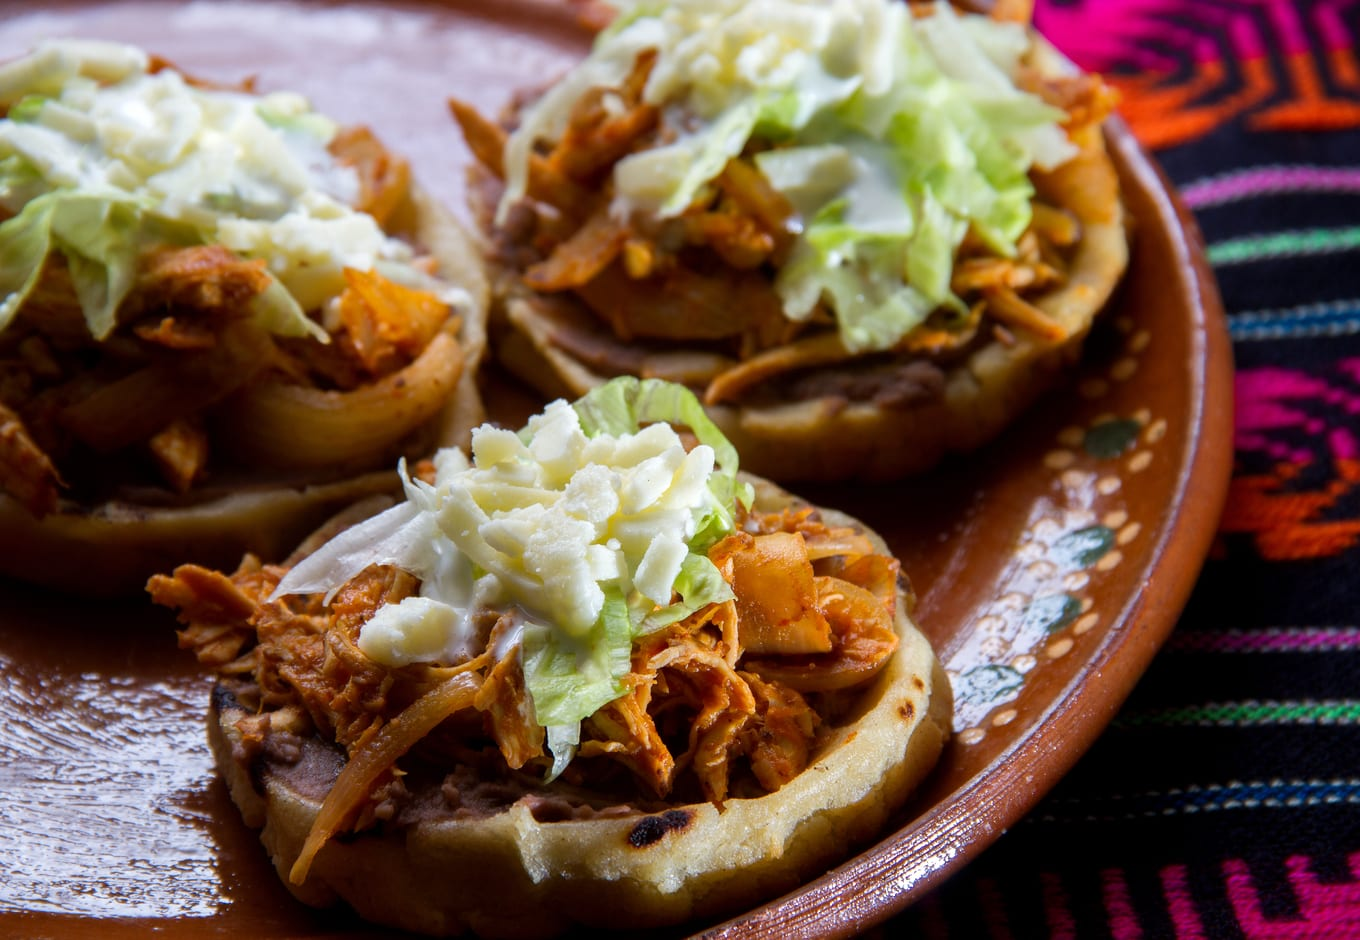 A plate of Tinga Sopes, a traditional Mexican dish.